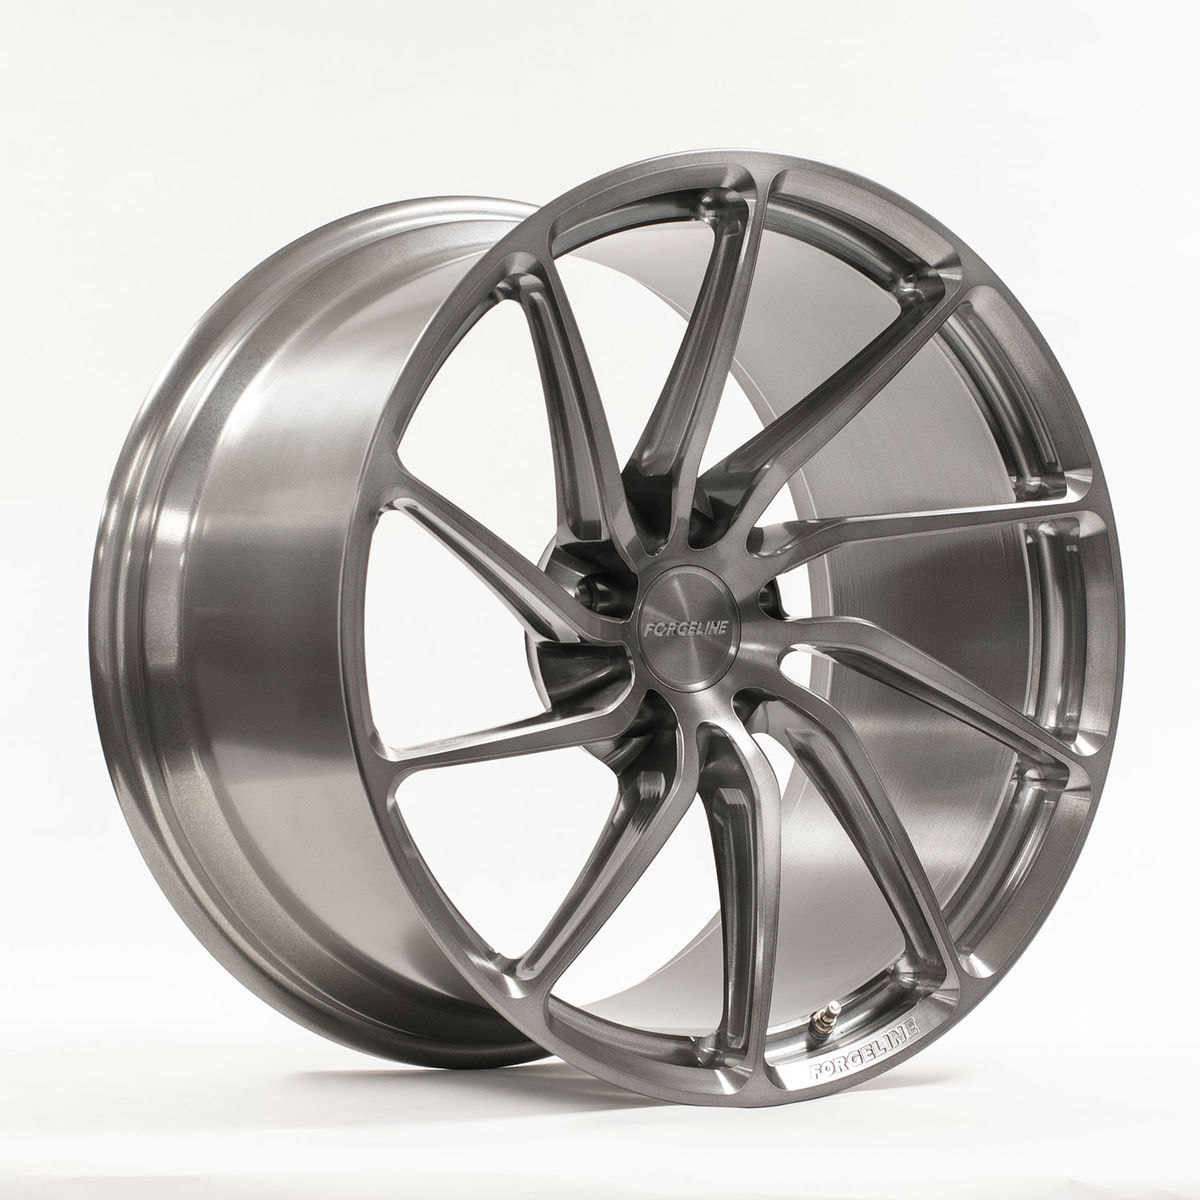 | Wheel Wednesday: Forgeline's New One Piece Forged Monoblock DR1 Wheel